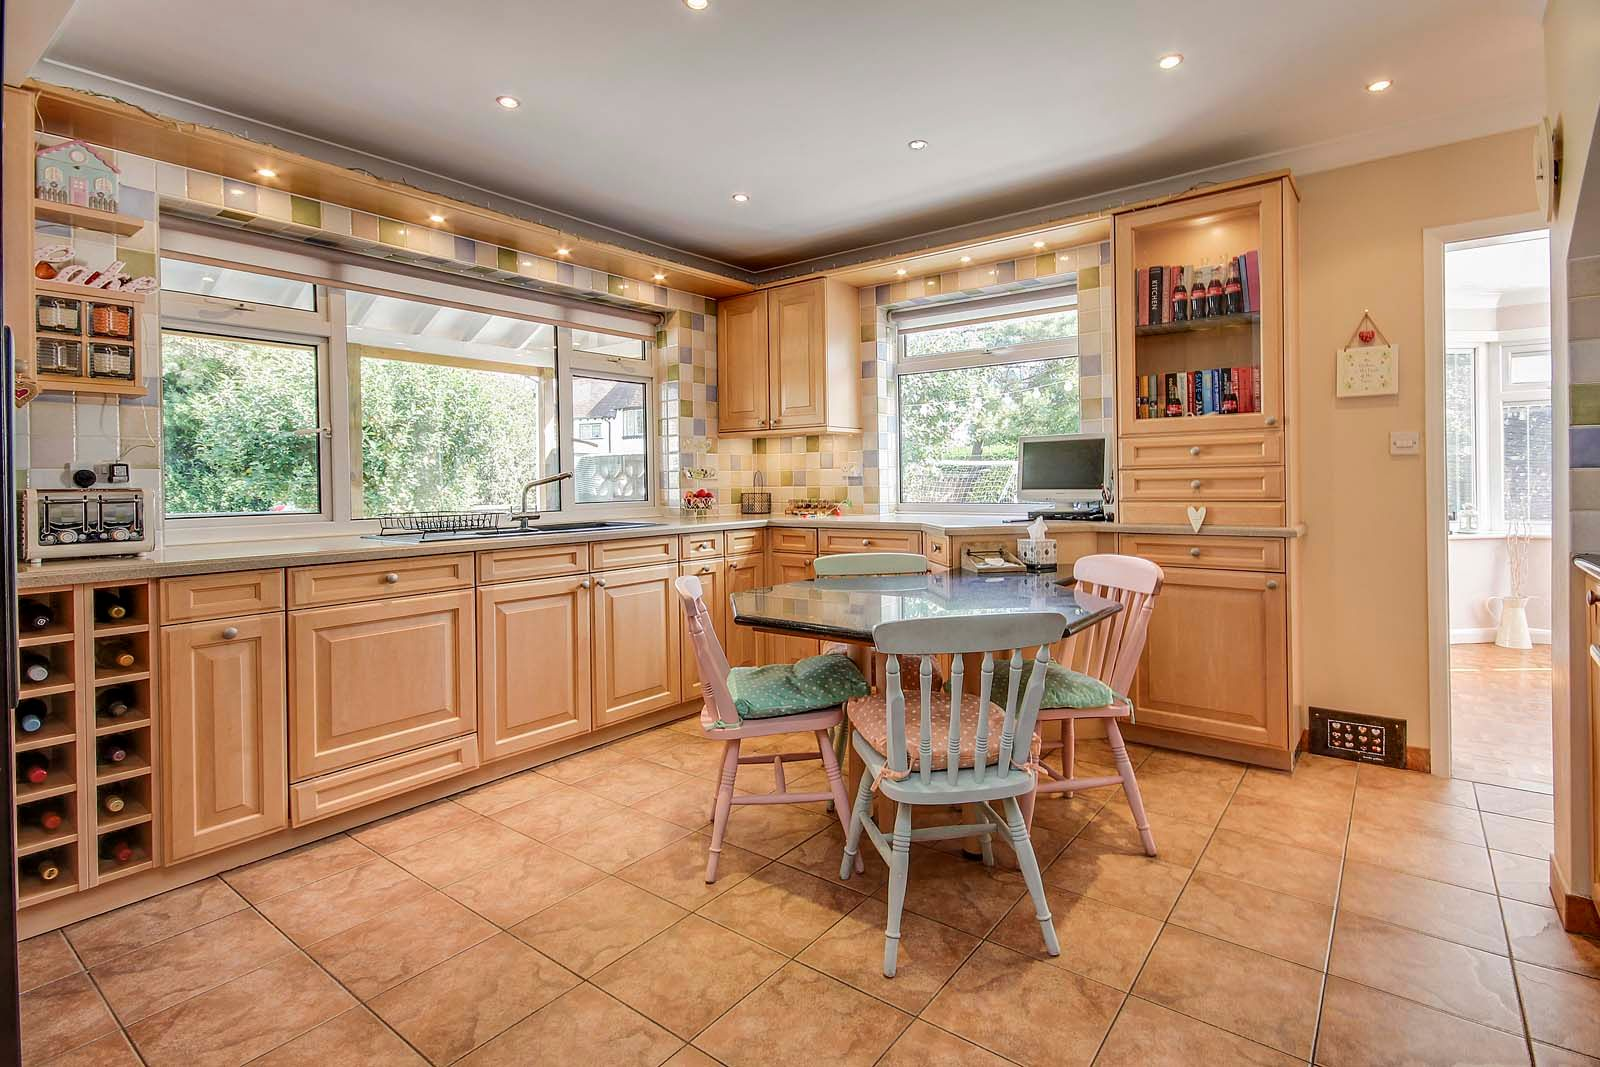 4 bed House for sale in Rustington - Kitchen (Property Image 8)